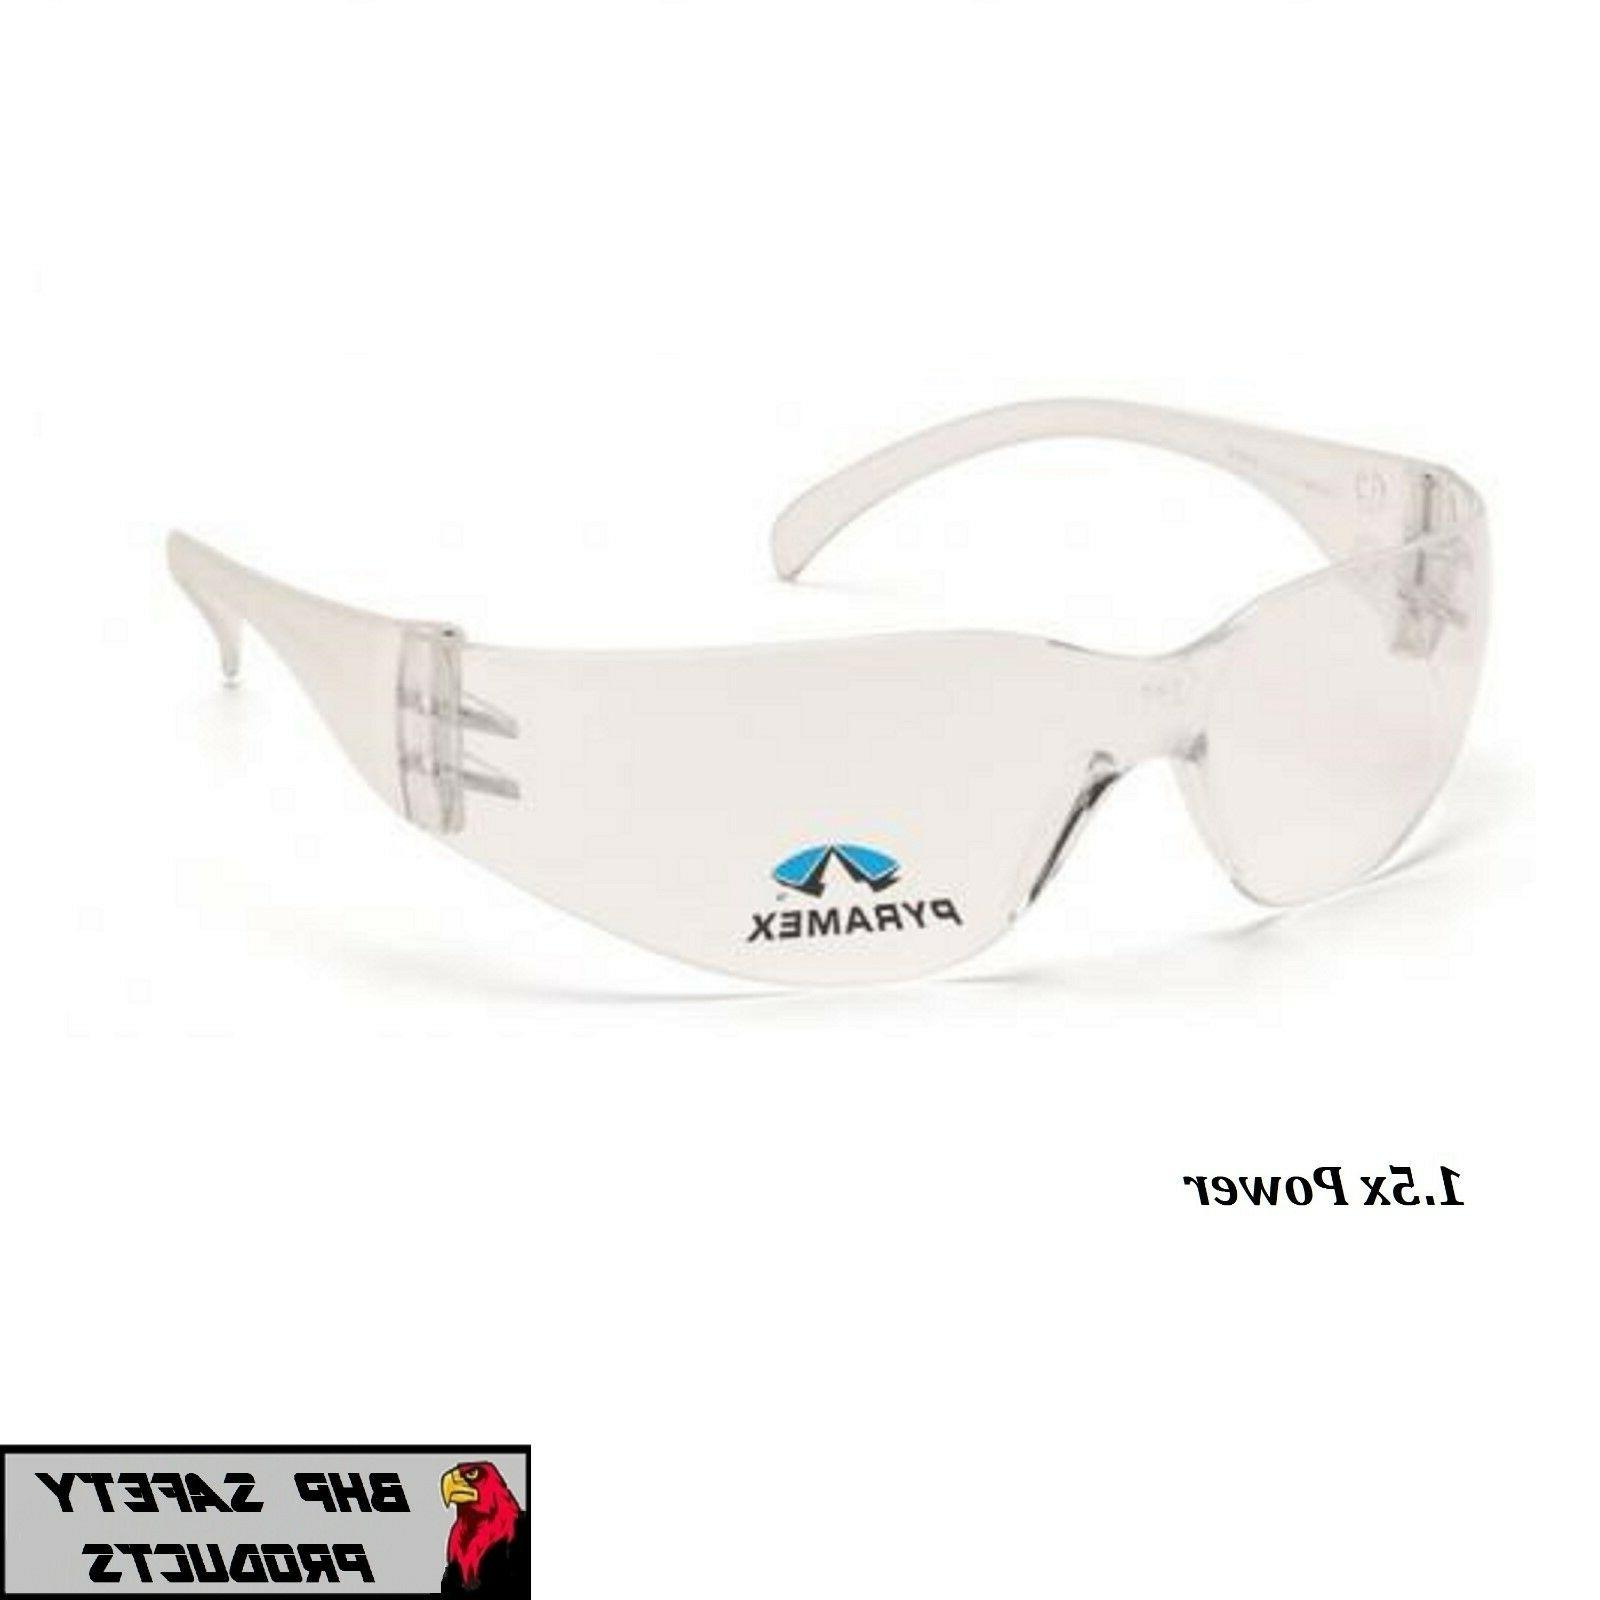 intruder reader safety glasses bifocal clear 1